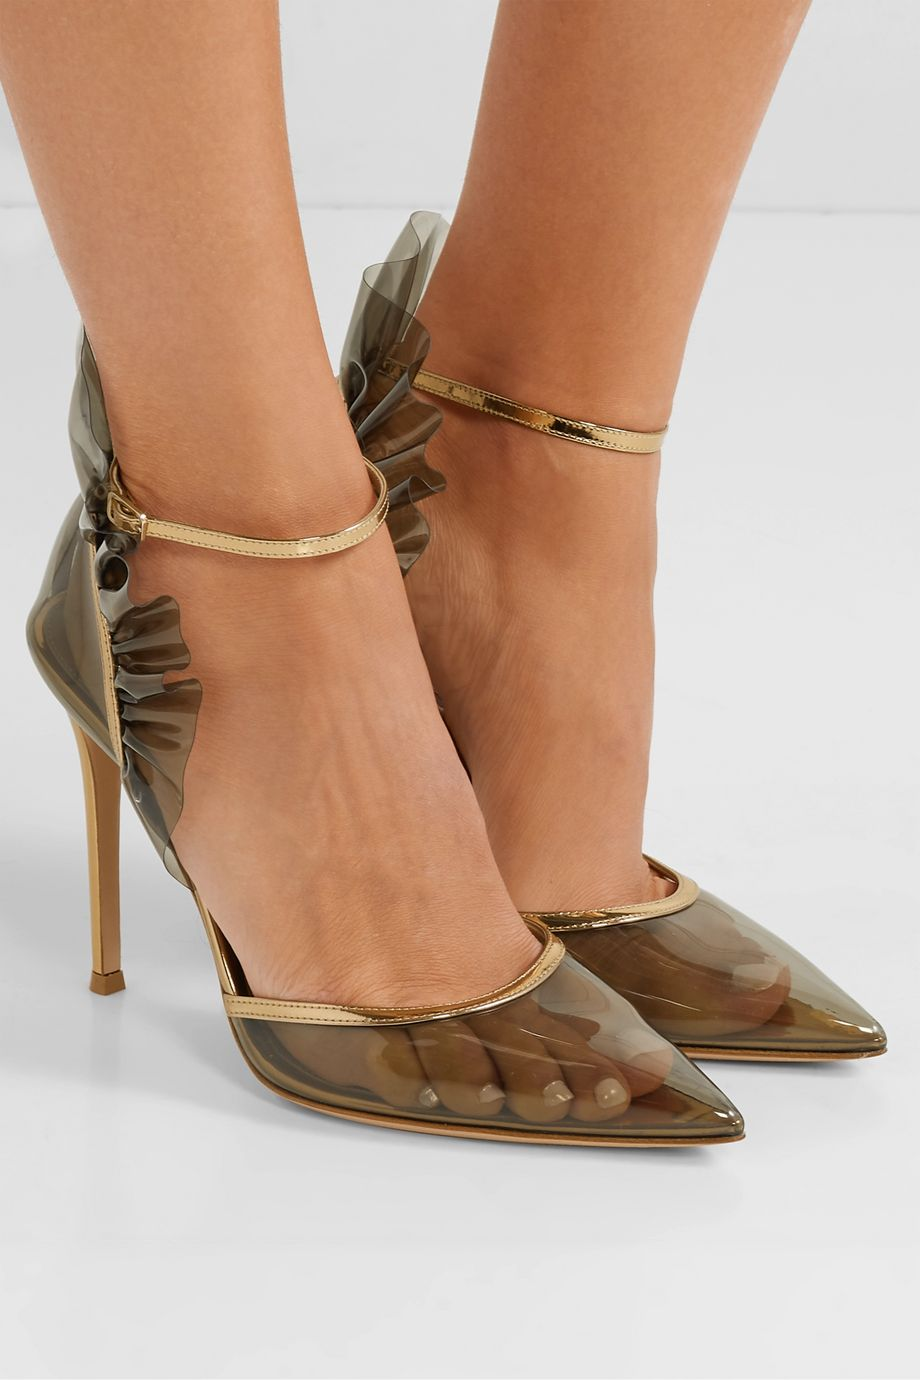 Gianvito Rossi 105 metallic leather-trimmed ruffled PVC pumps